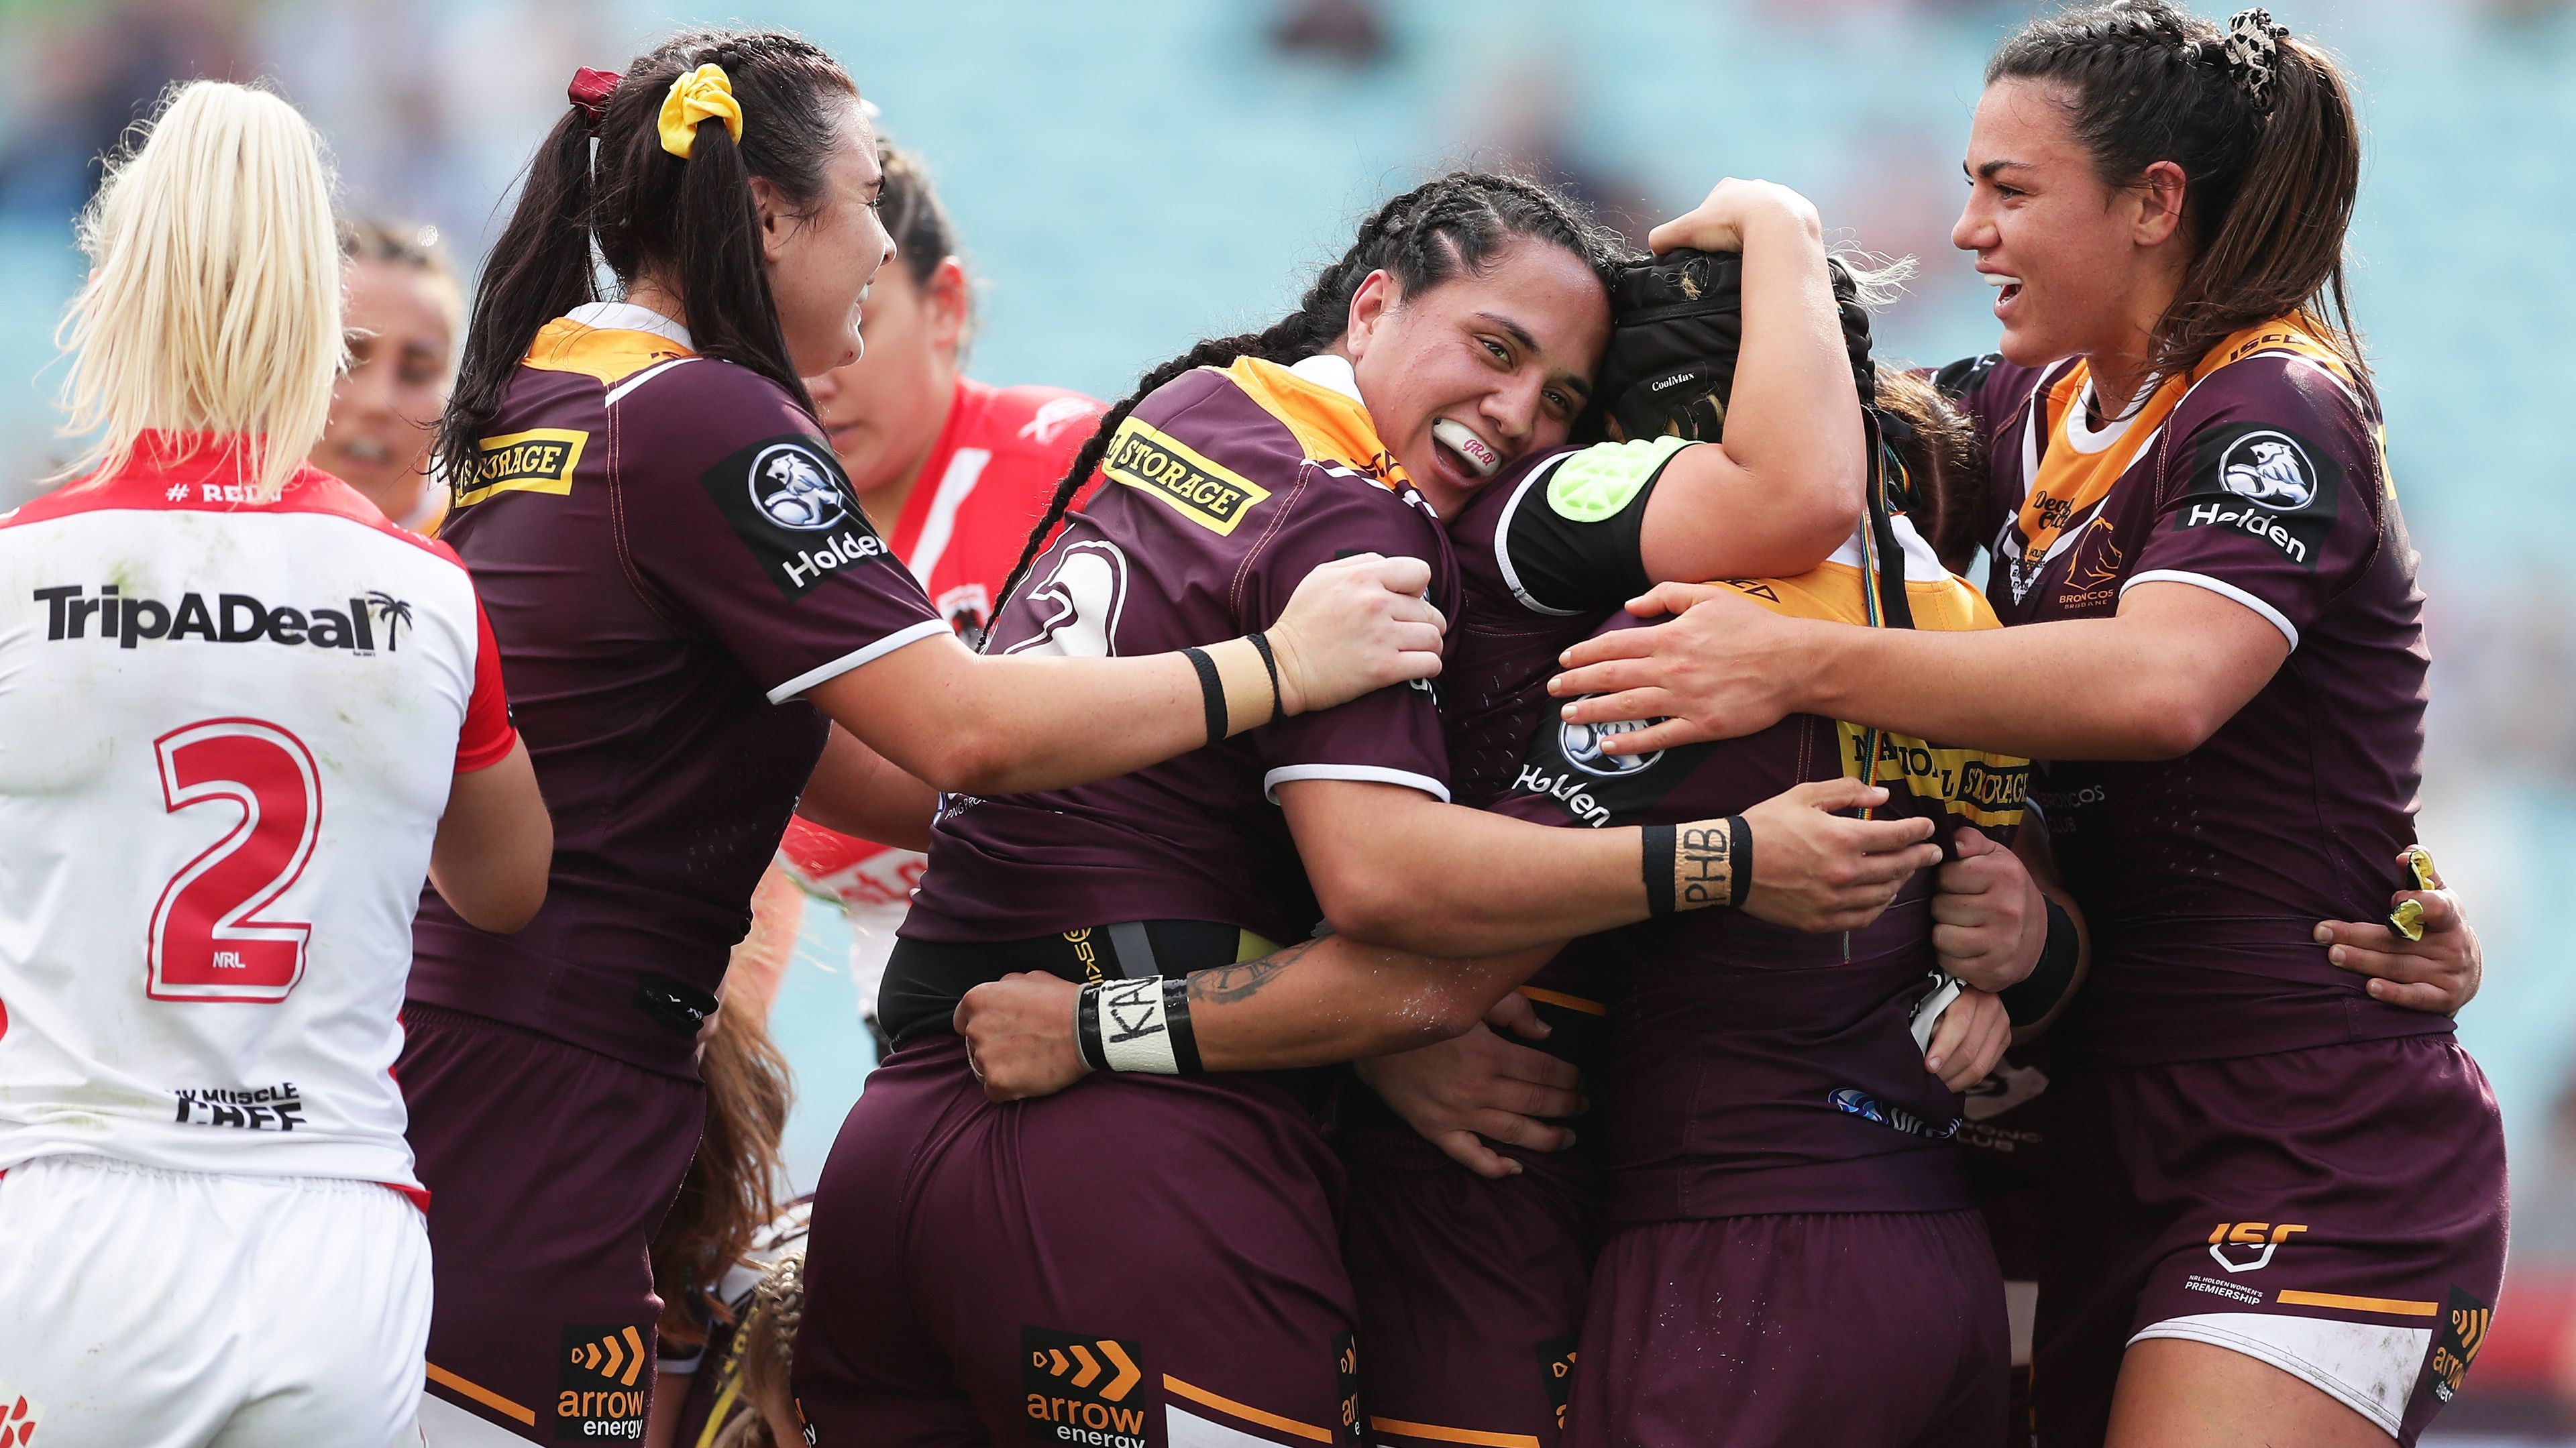 The Broncos celebrate in the NRLW Grand Final.